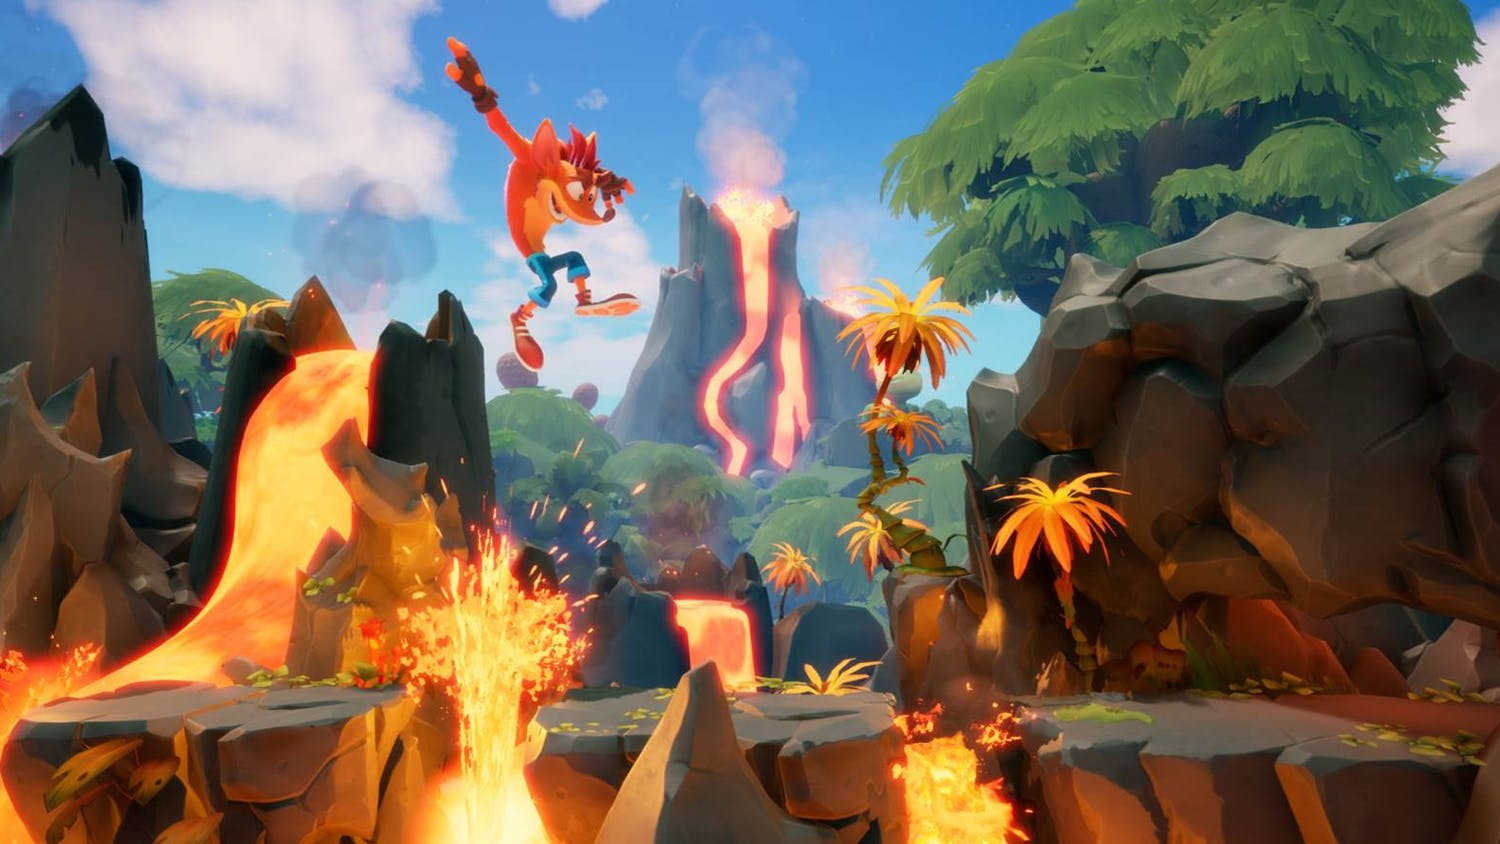 PS4 - Crash Bandicoot 4: It's About Time (CTC)